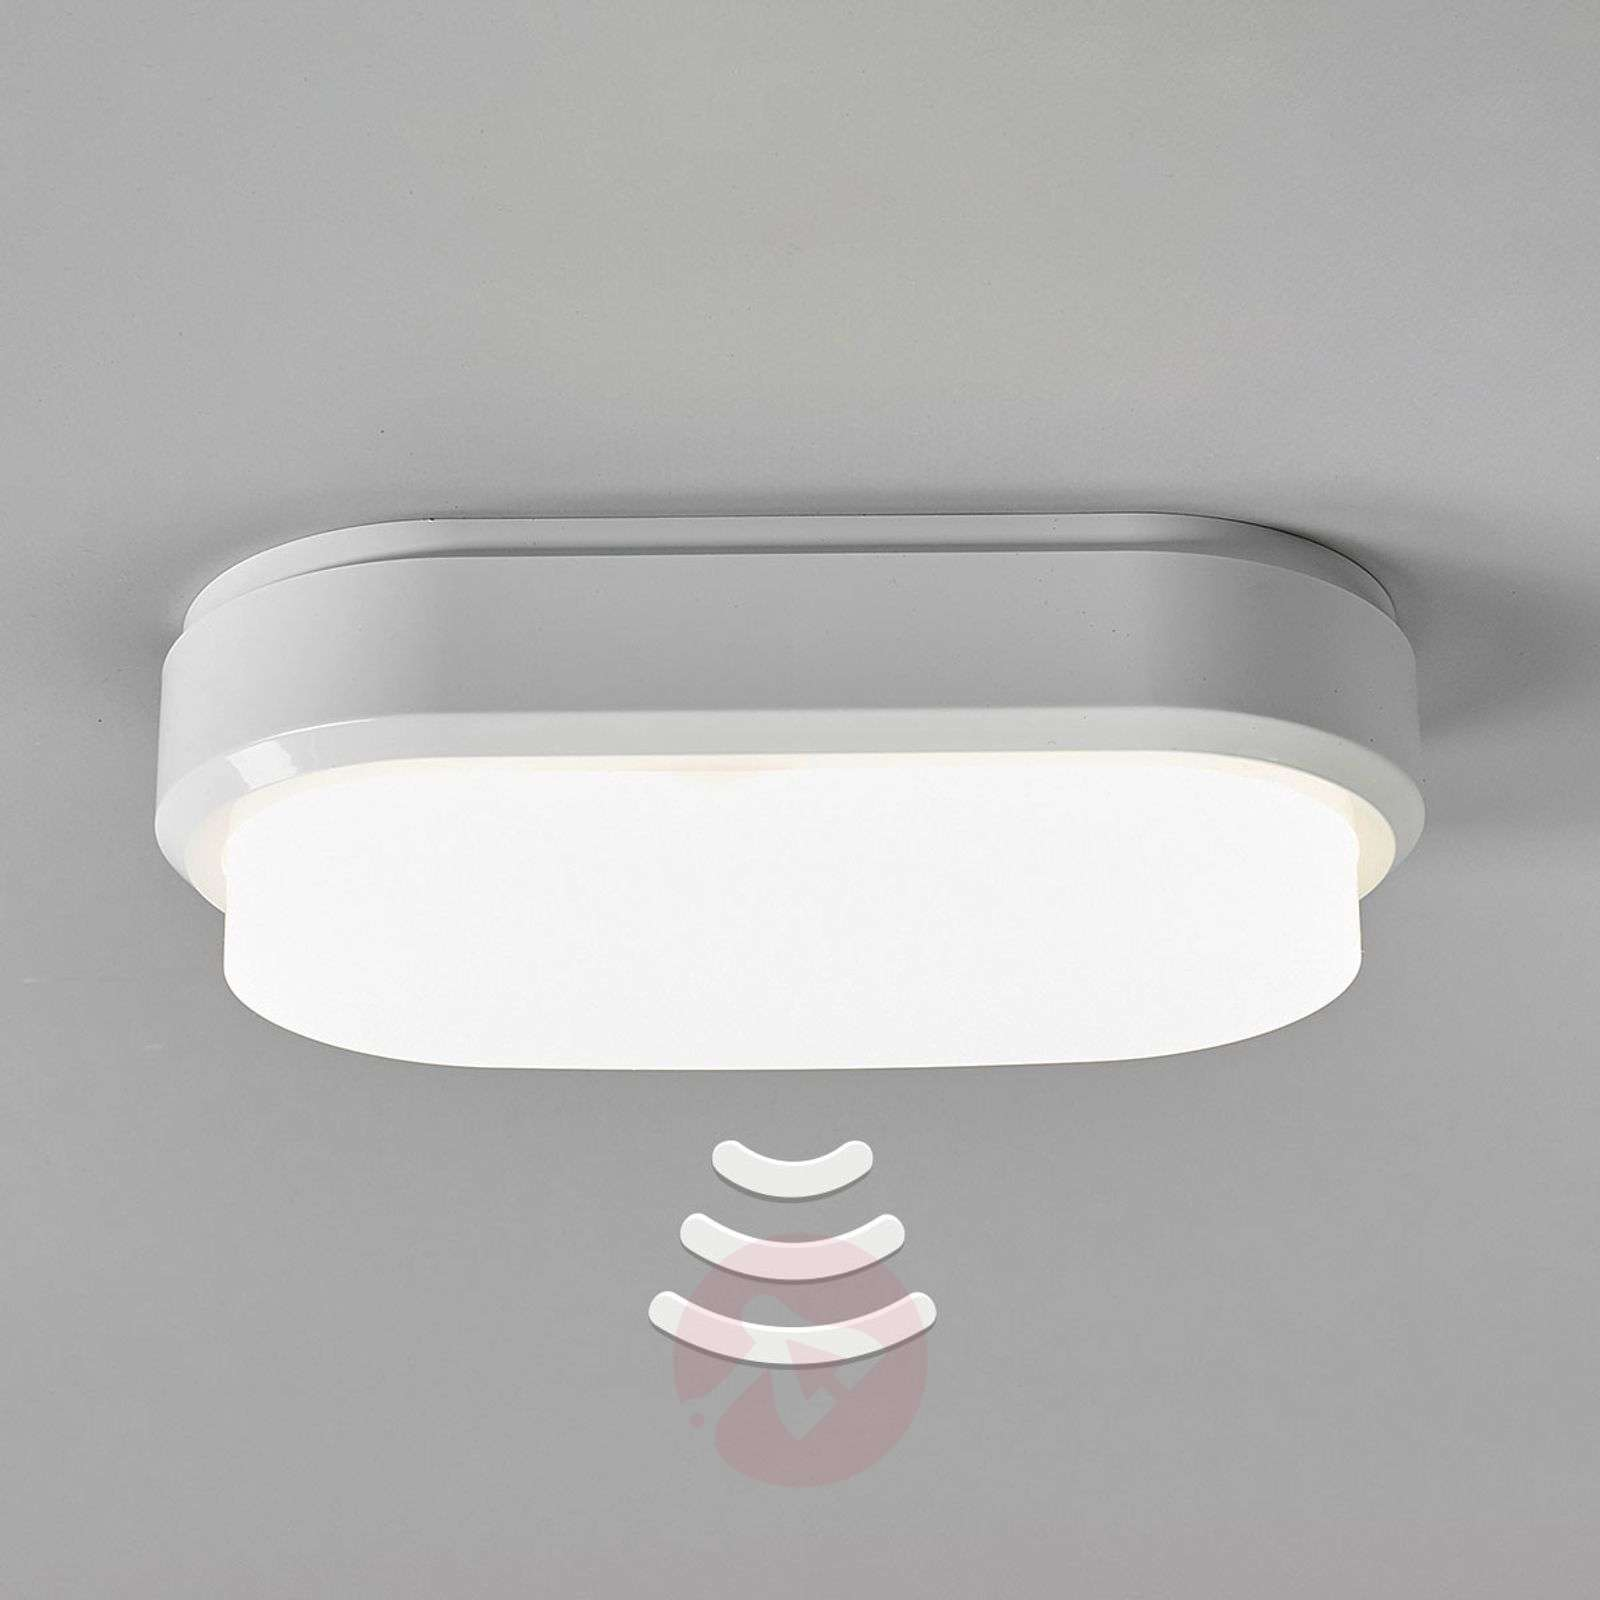 Bulkhead oval led ceiling lamp with sensor lights bulkhead oval led ceiling lamp with sensor 8559217 01 mozeypictures Gallery